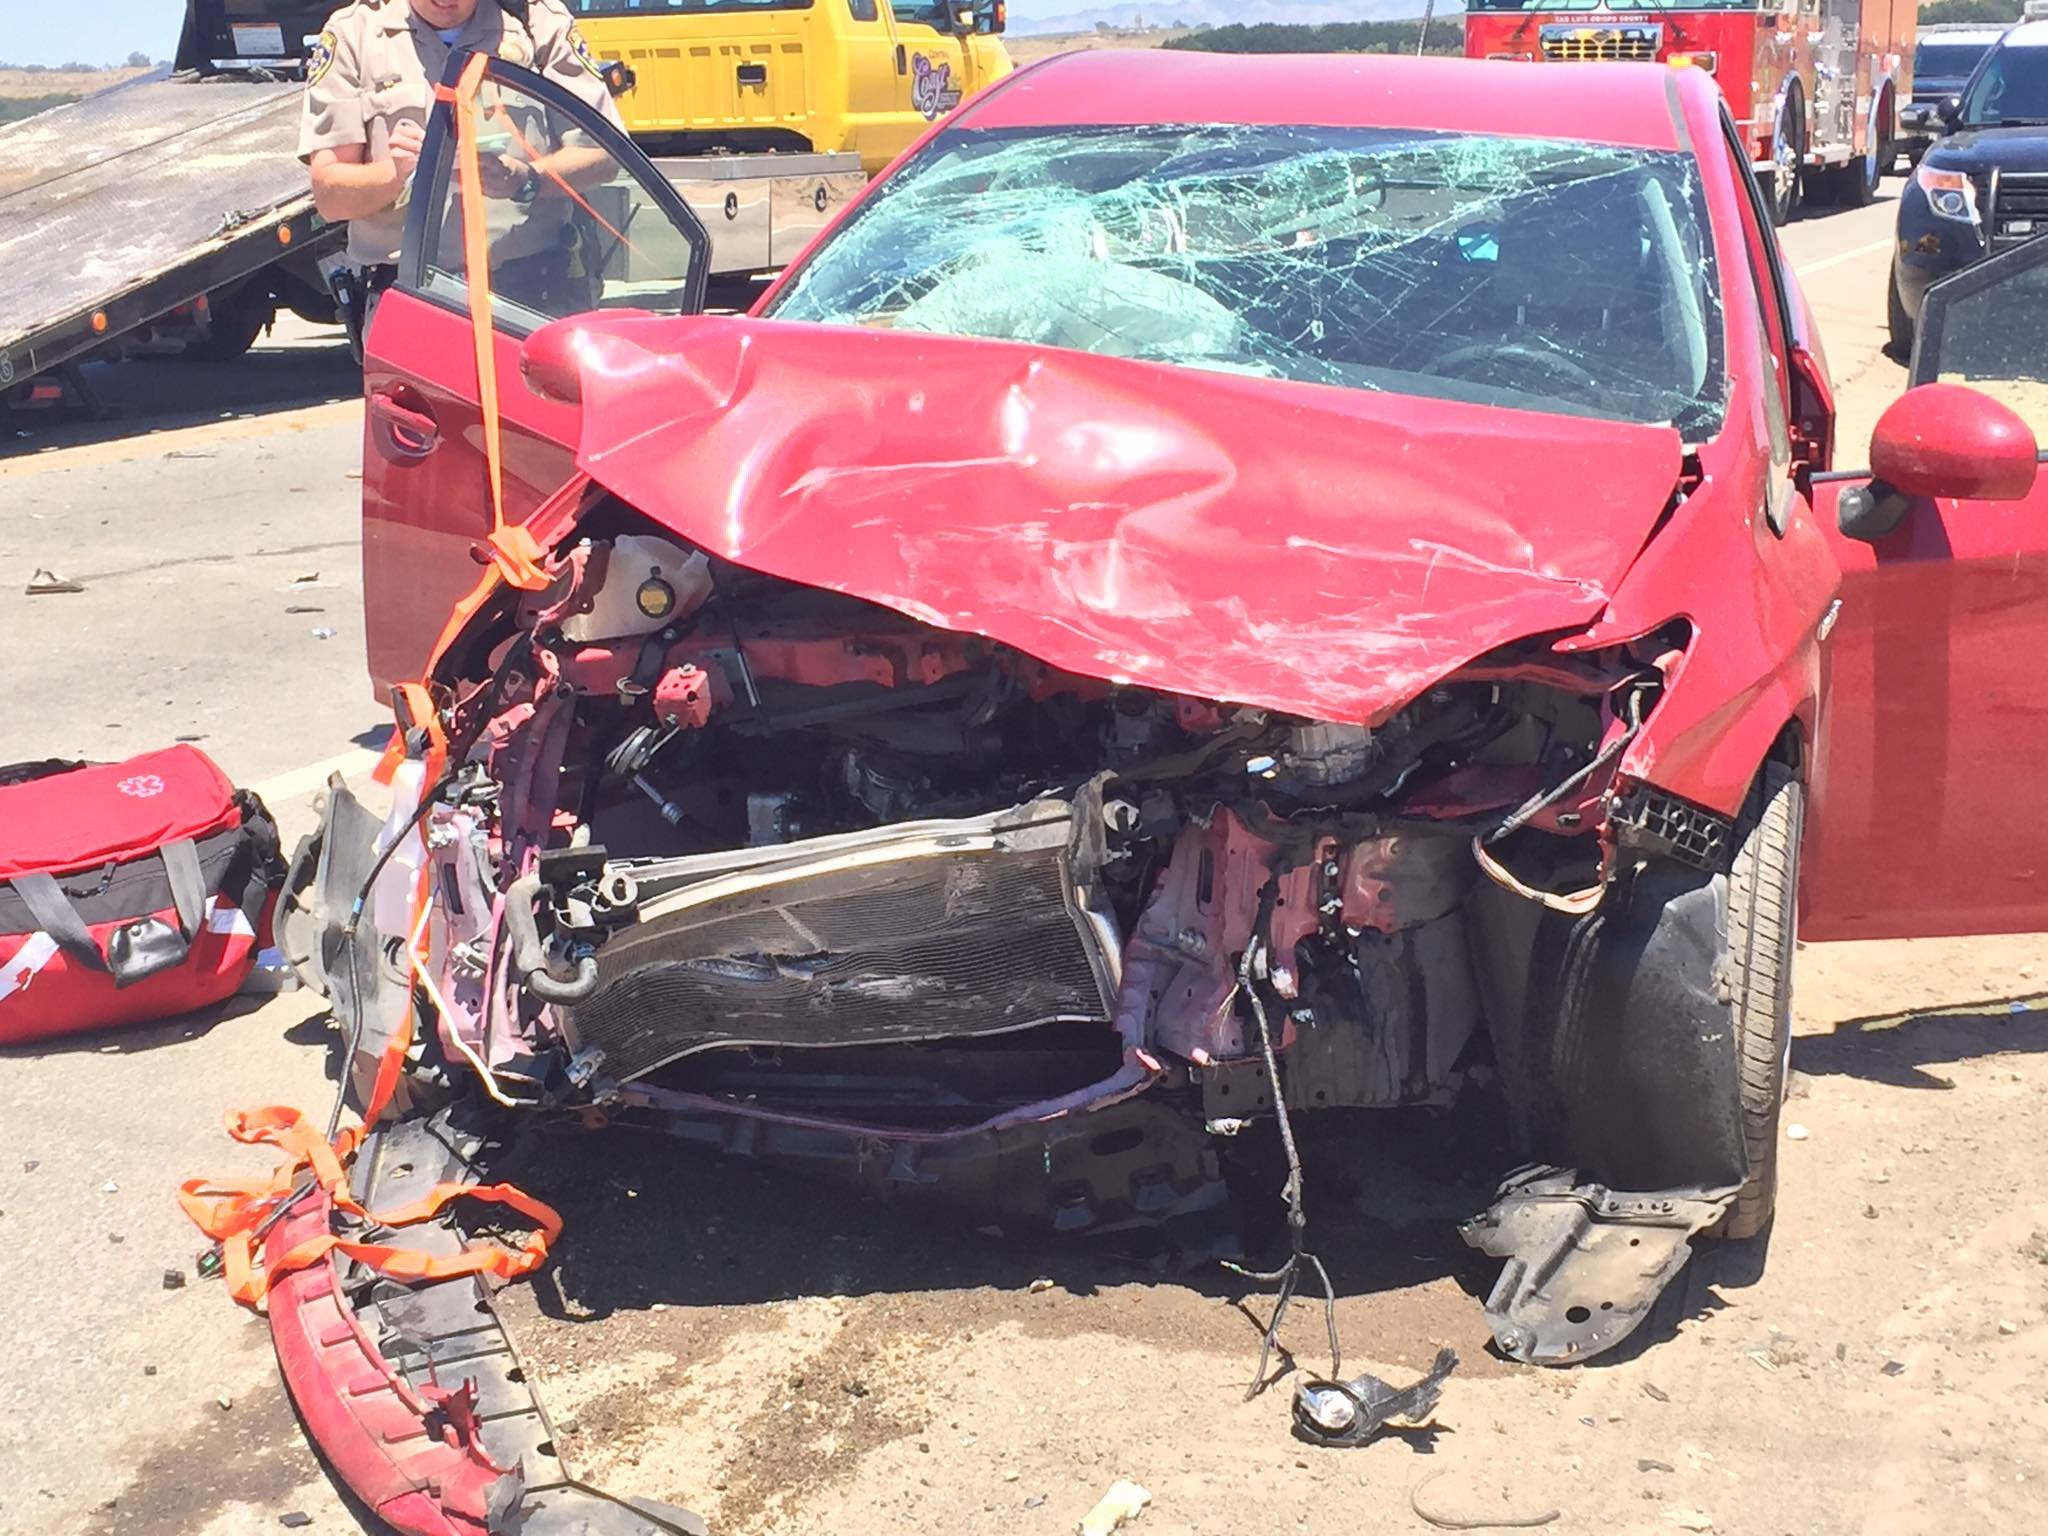 One of three vehicles involved in a crash Monday on Highway 1 in Guadalupe. (Photo: Guadalupe FD)